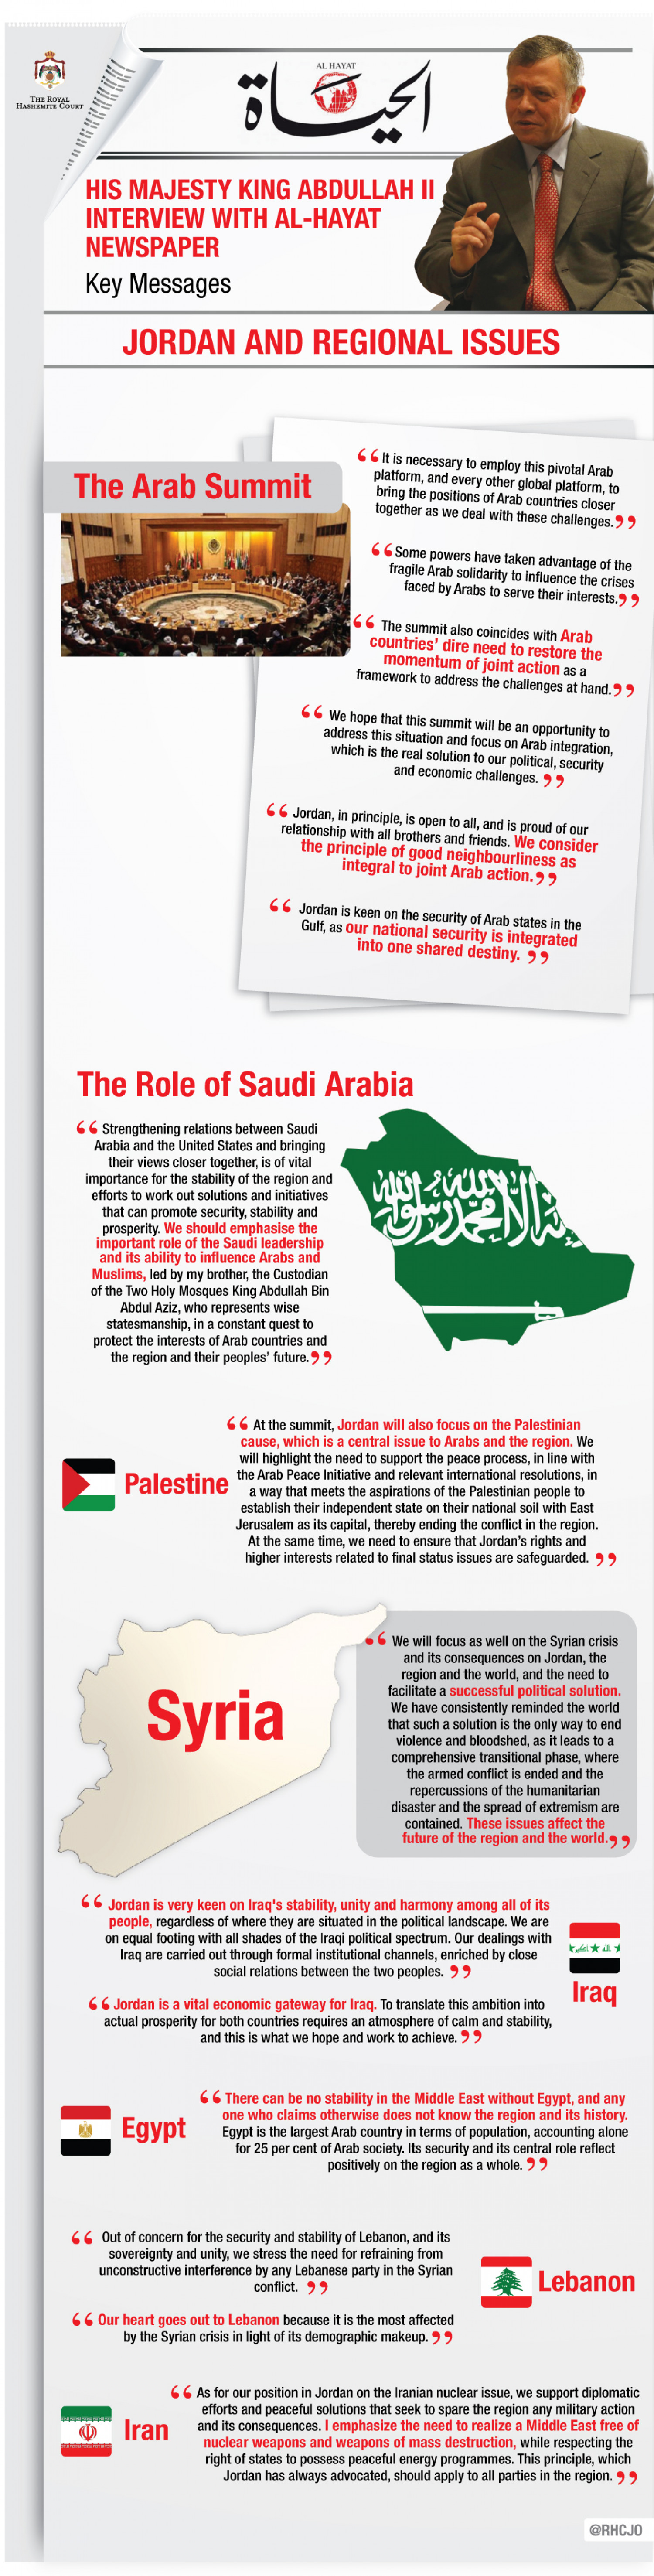 Jordan and Regional Issues Infographic